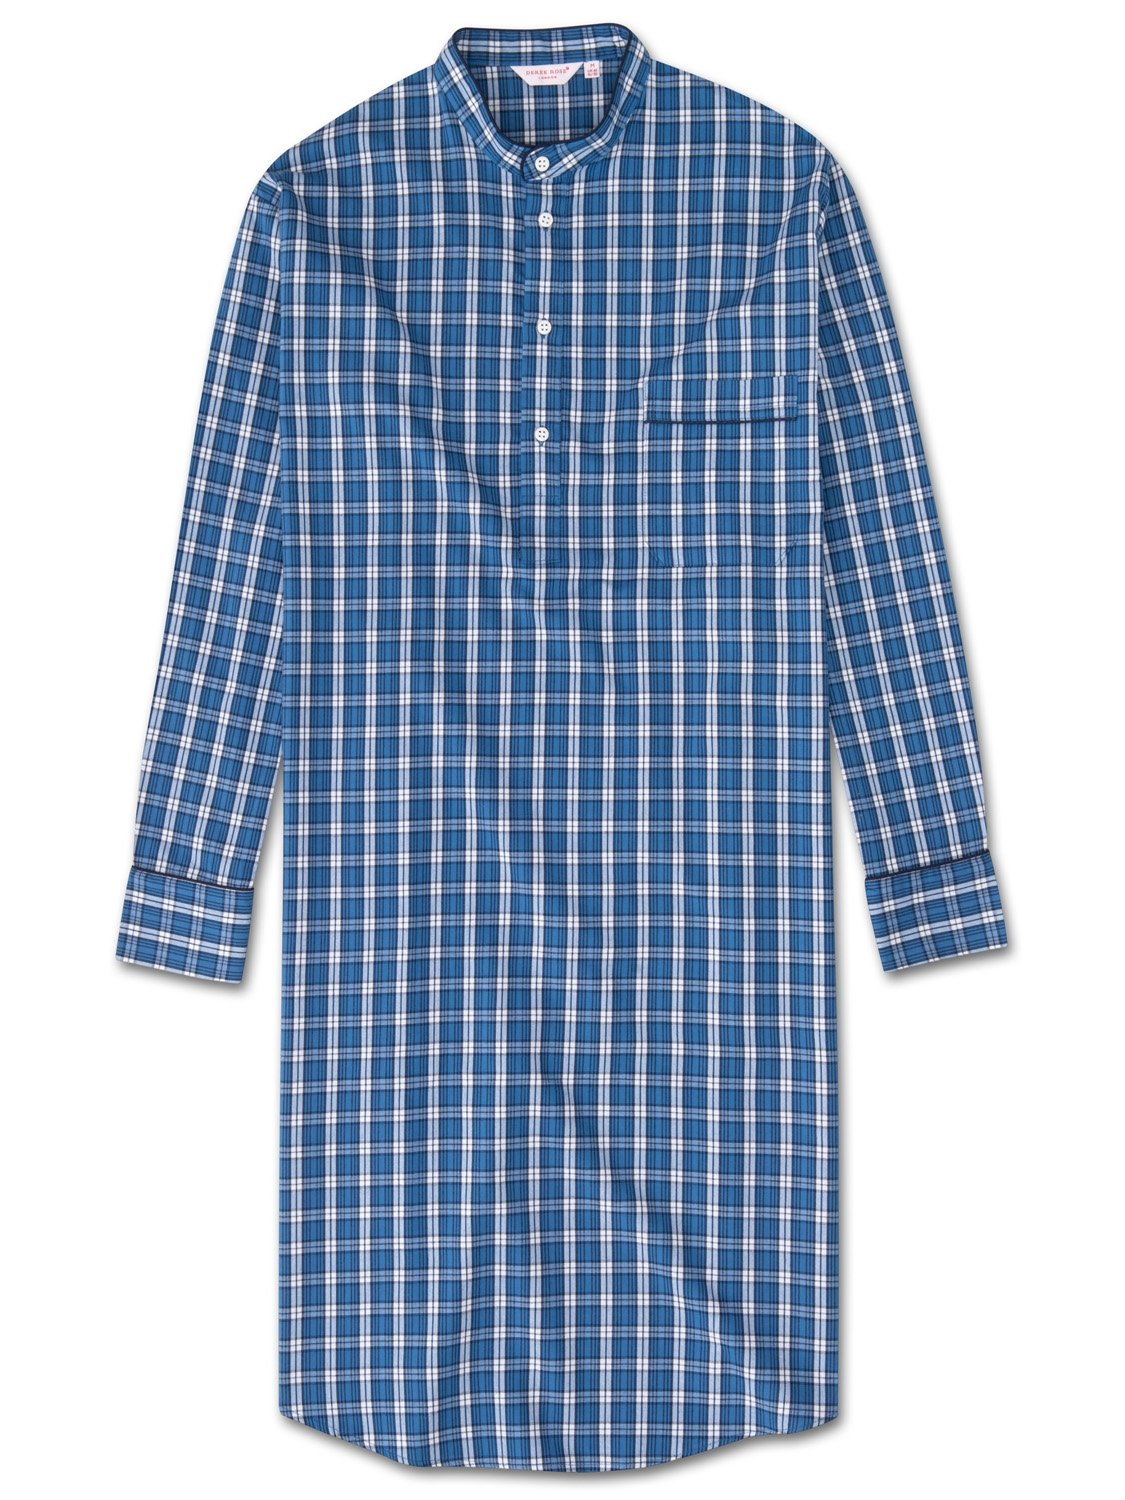 Men's Pullover Nightshirt Ranga 32 Brushed Cotton Check Blue